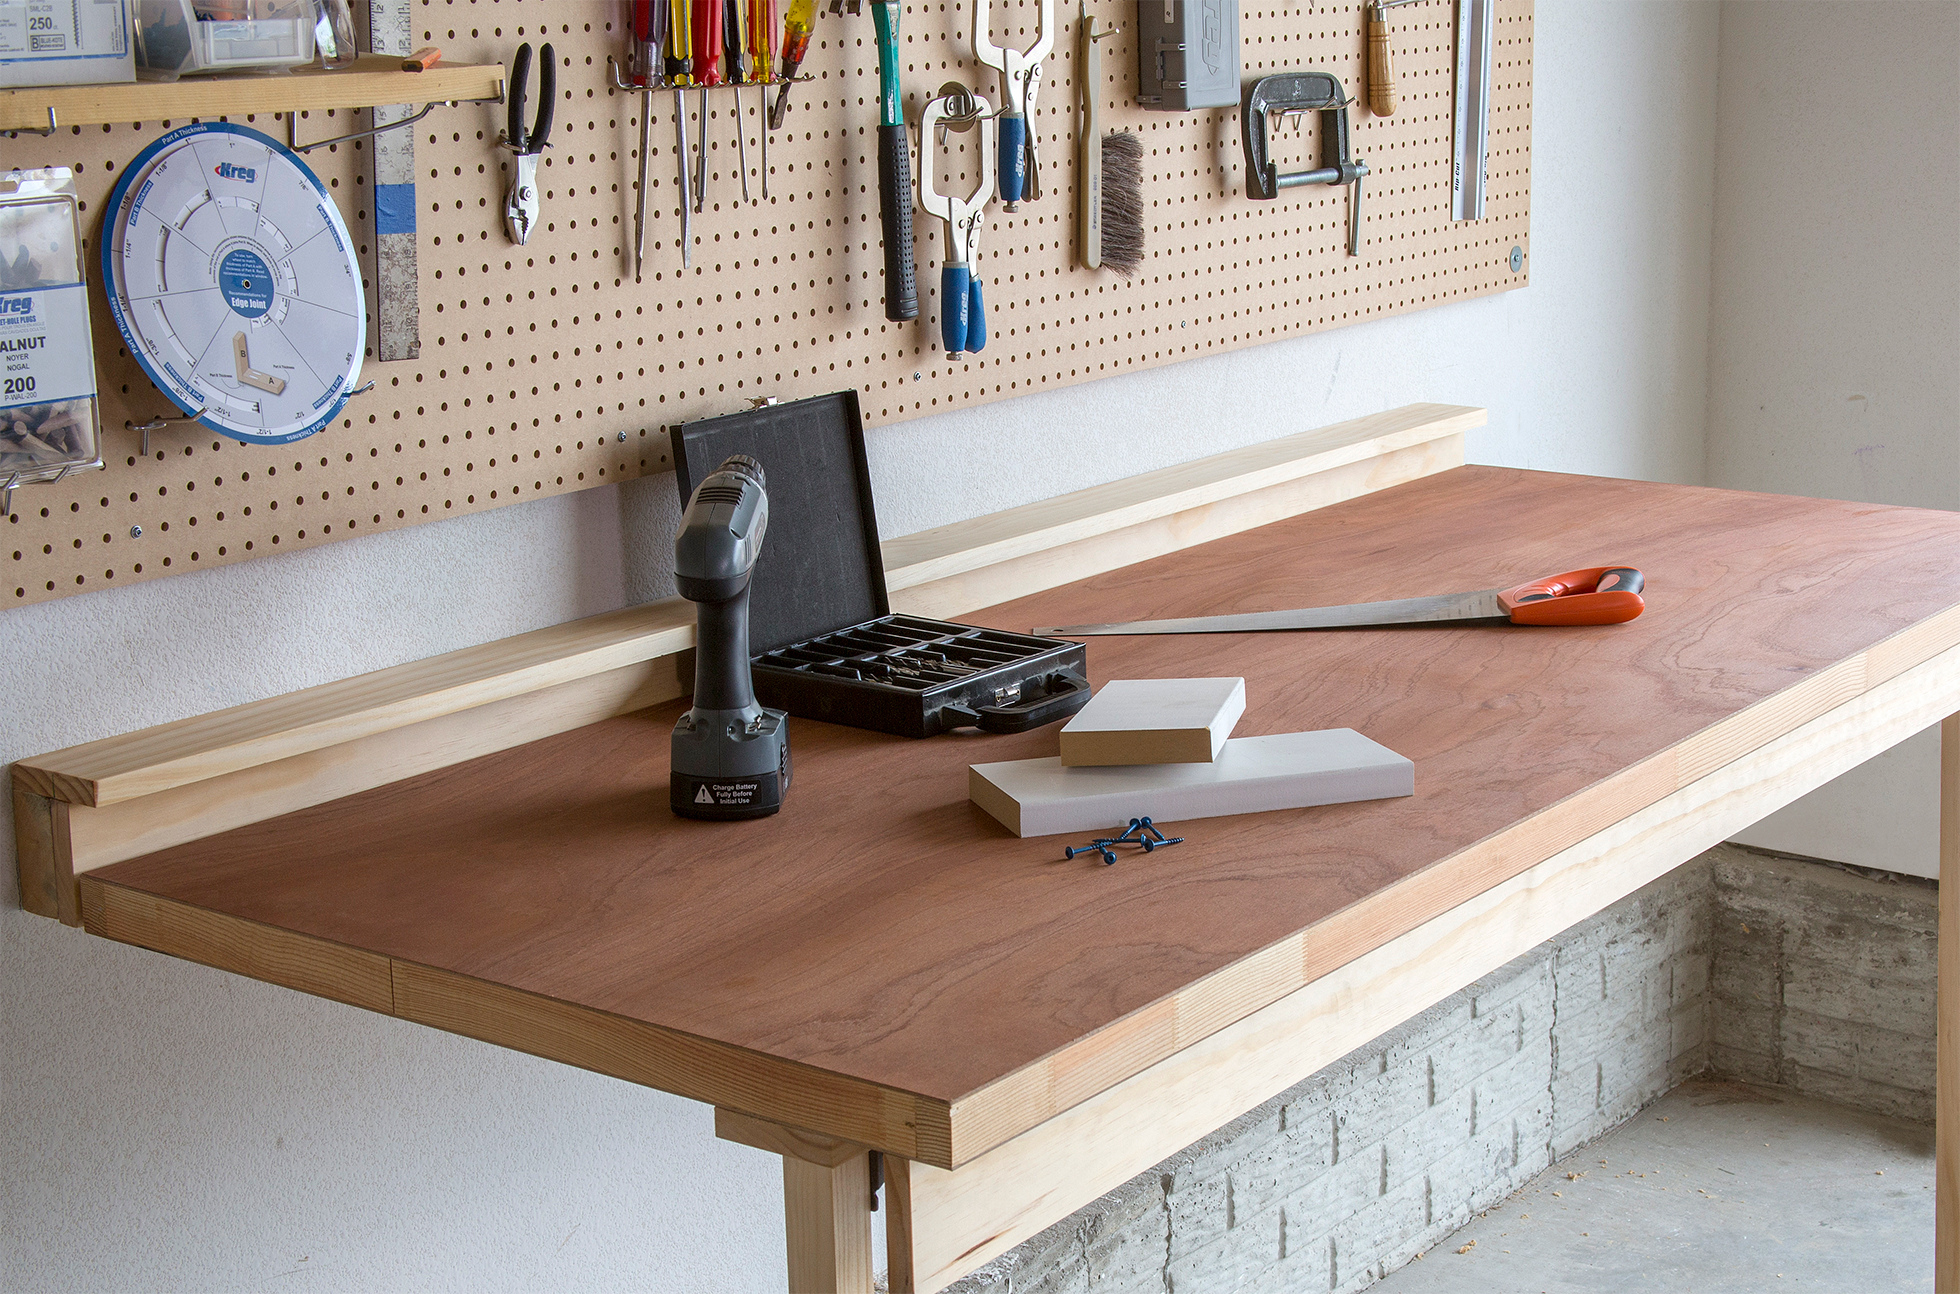 A wood workbench with tools in a garage